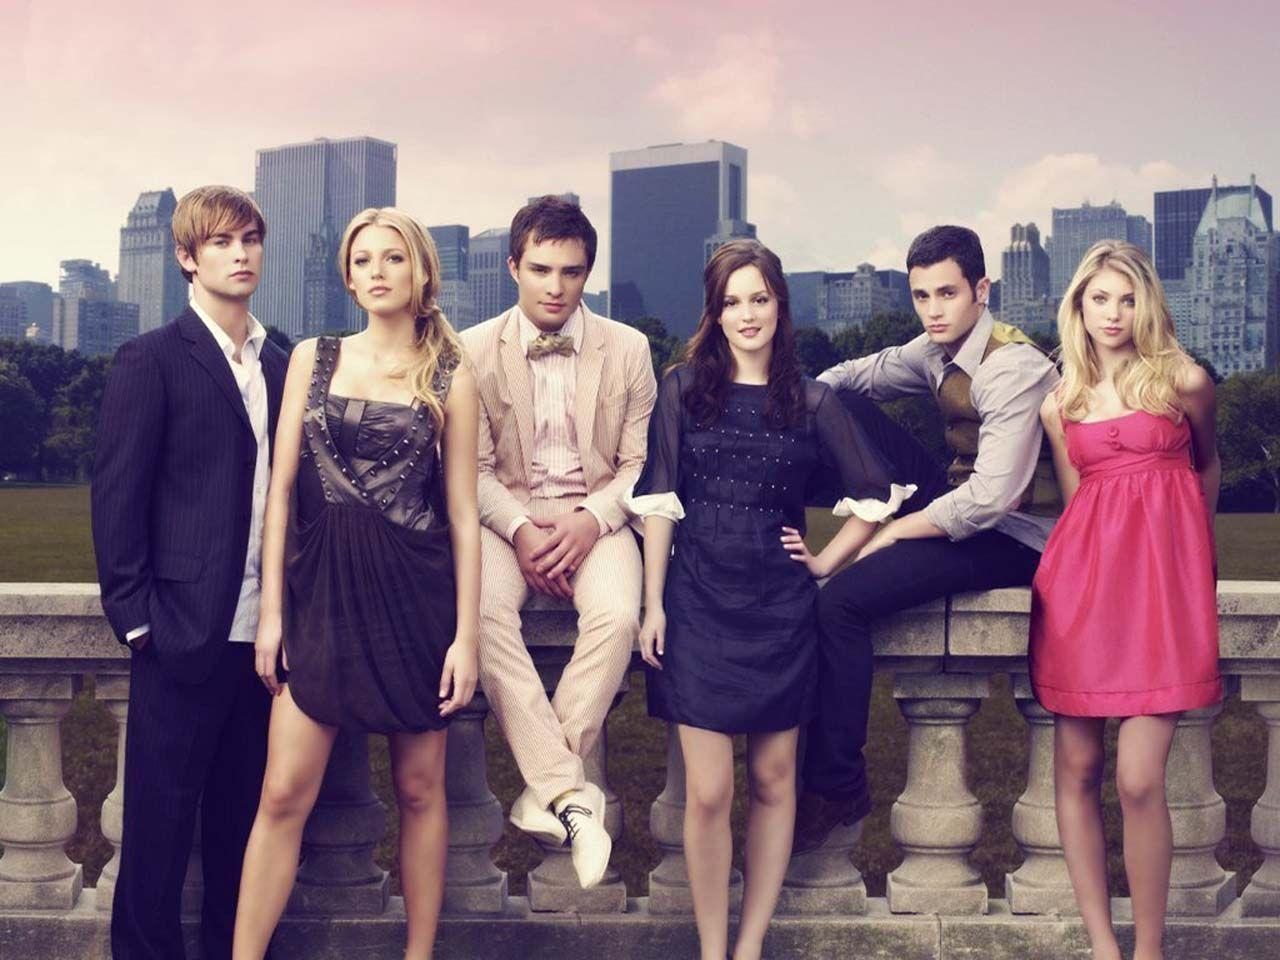 gossip girl wallpaper | Gossip Girl Wallpaper Download ...